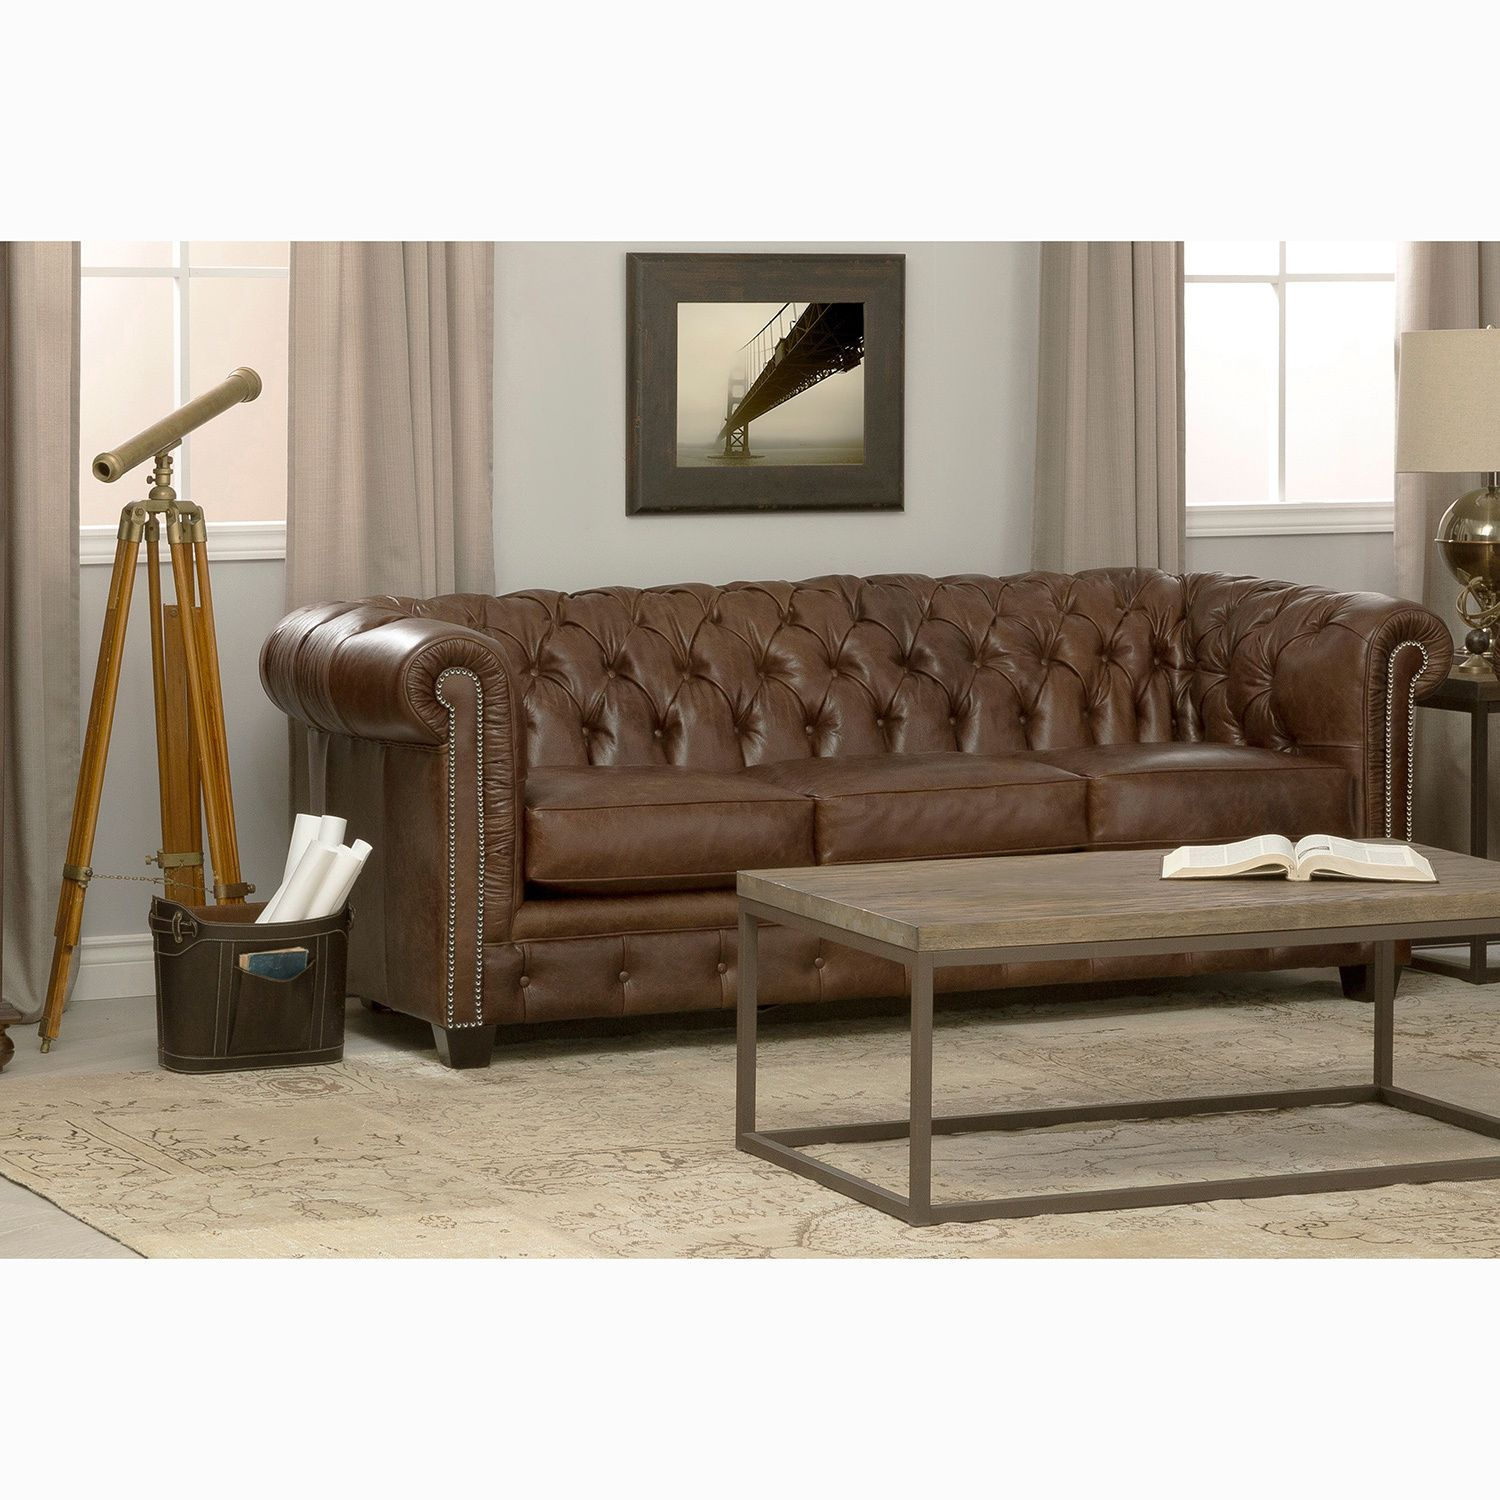 Best Hancock Tufted Distressed Brown Leather Chesterfield Sofa 640 x 480